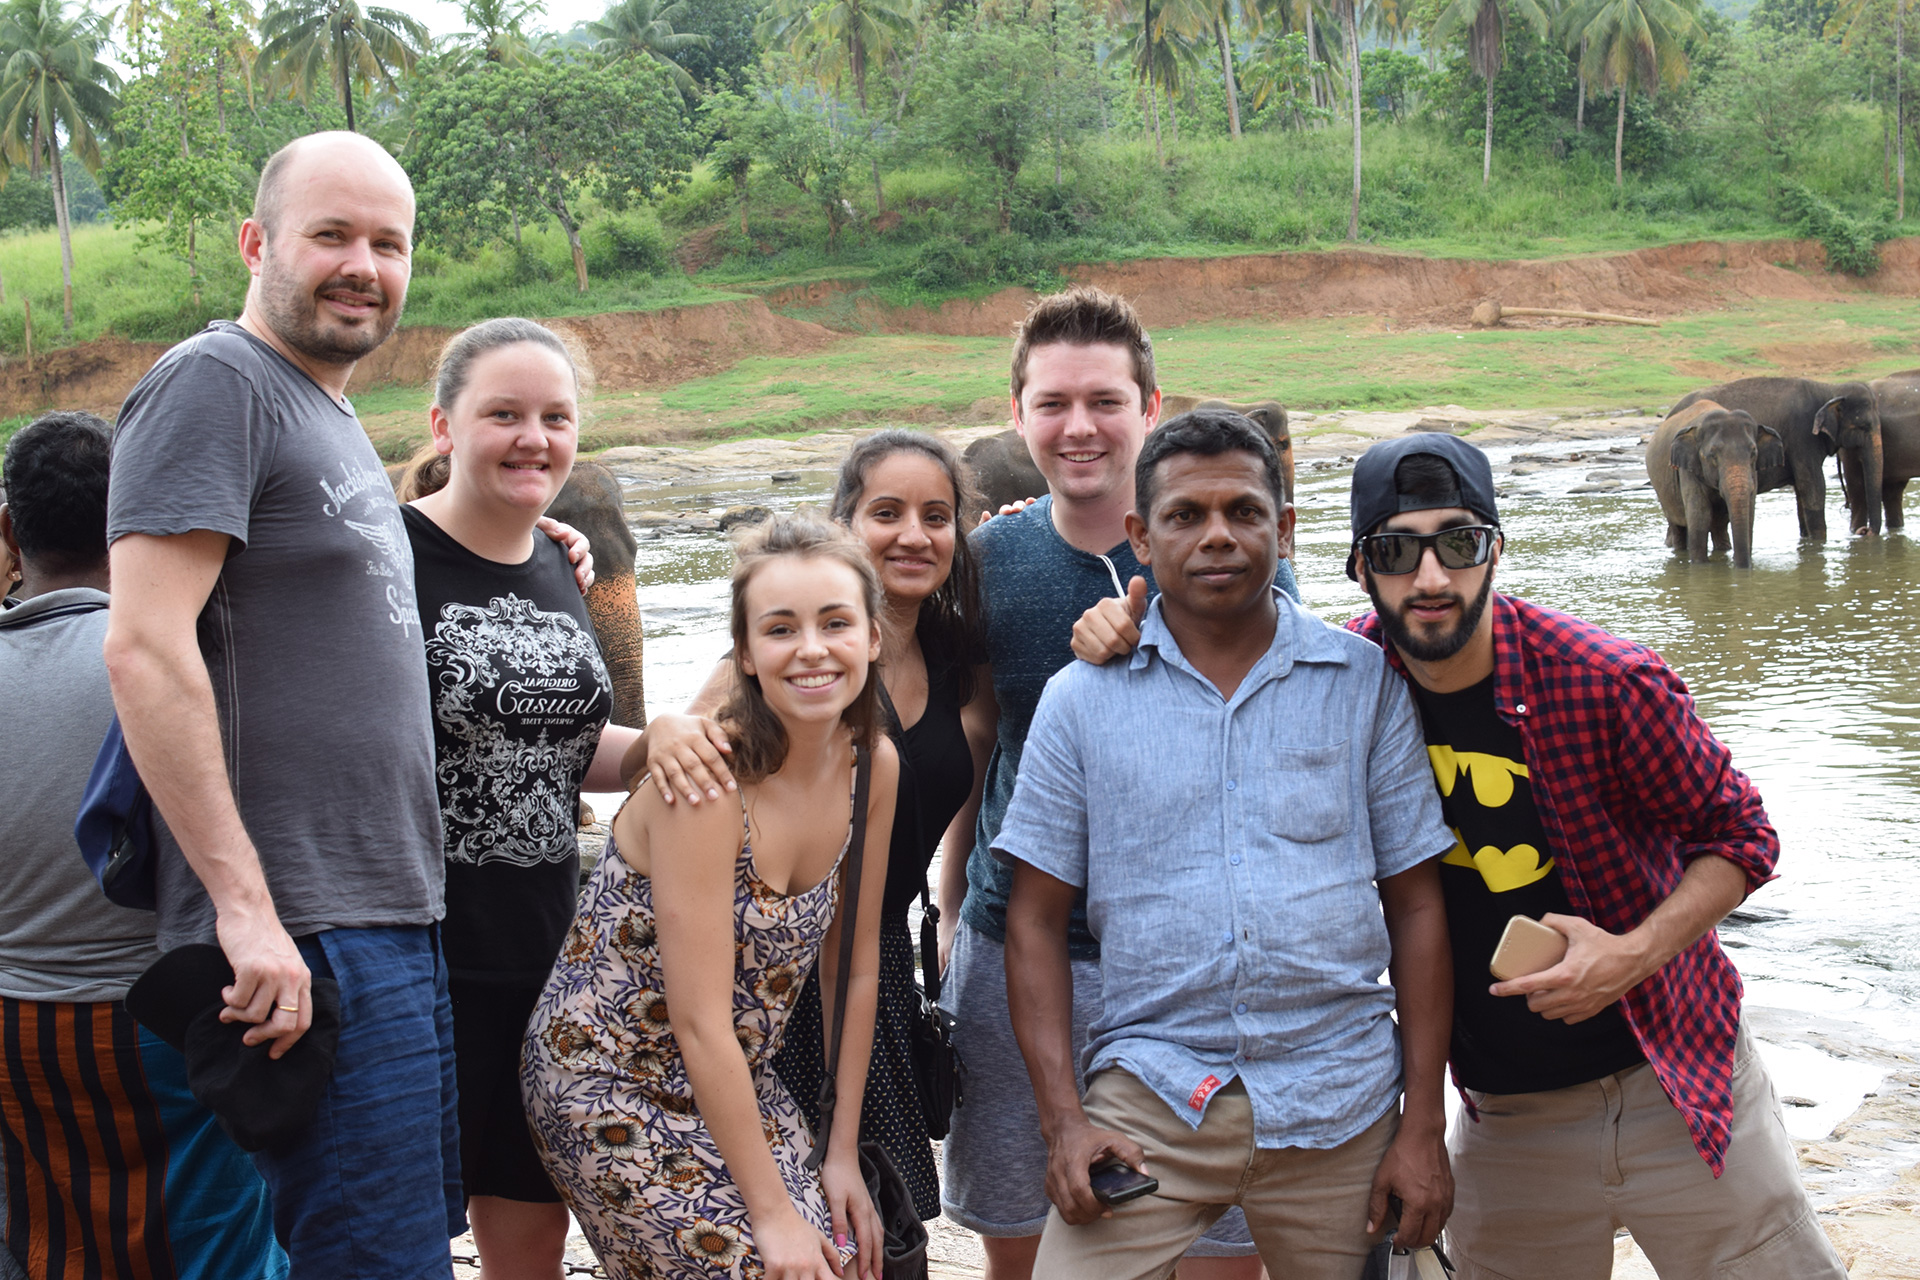 Come face to face with huge elephants in Sri Lanka during a 2 week group trip with VoluntEars